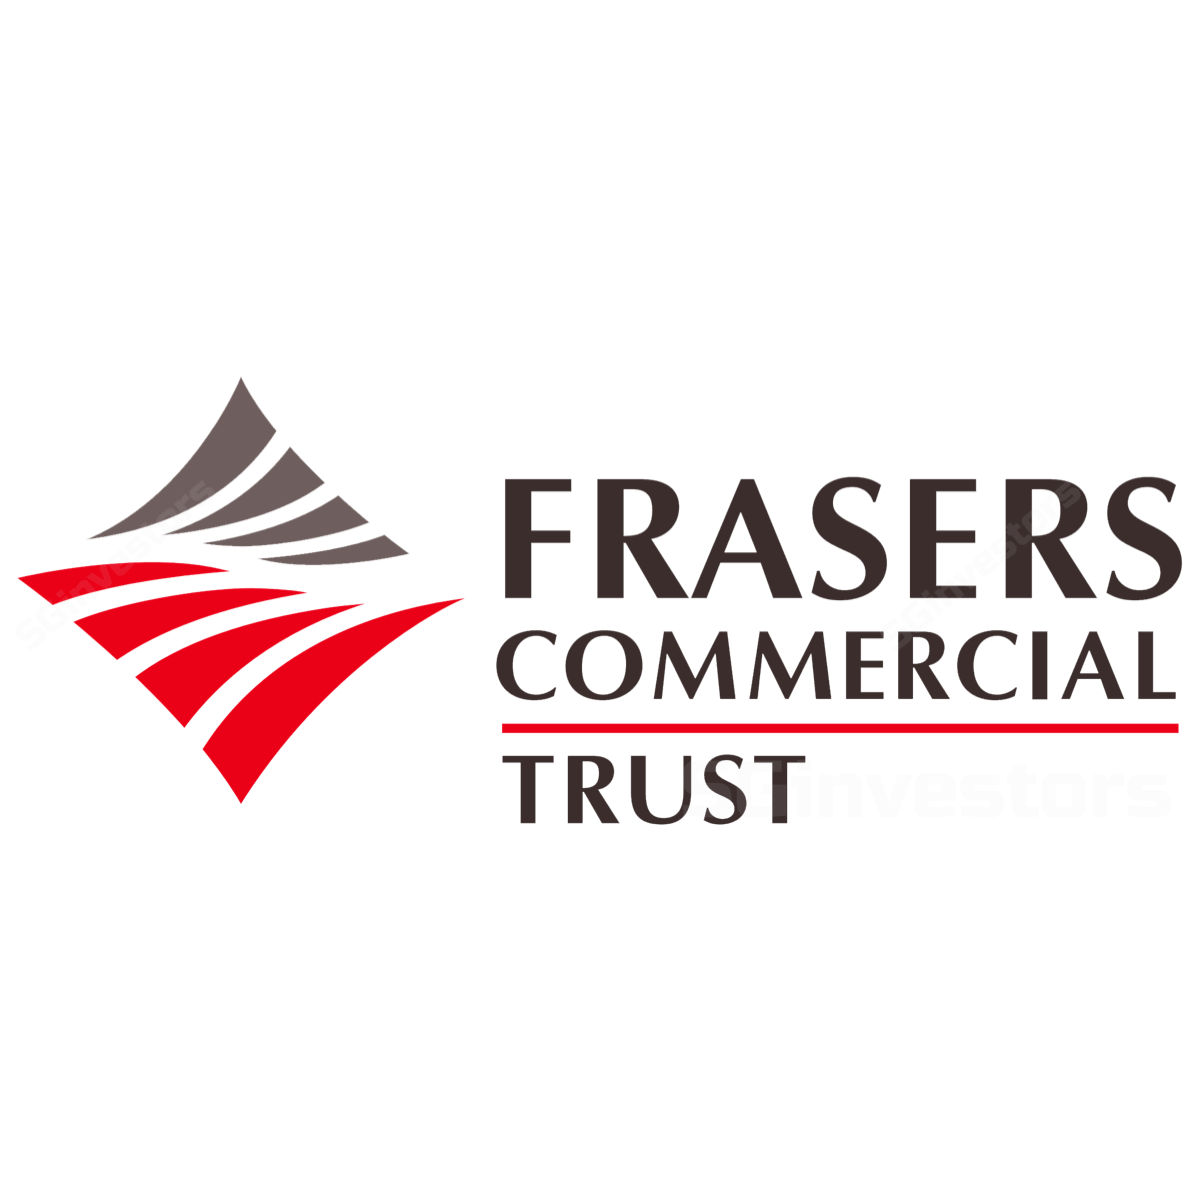 Frasers Commercial Trust - RHB Invest 2017-01-24: Revamping Alexandra Technopark to boost long-term growth